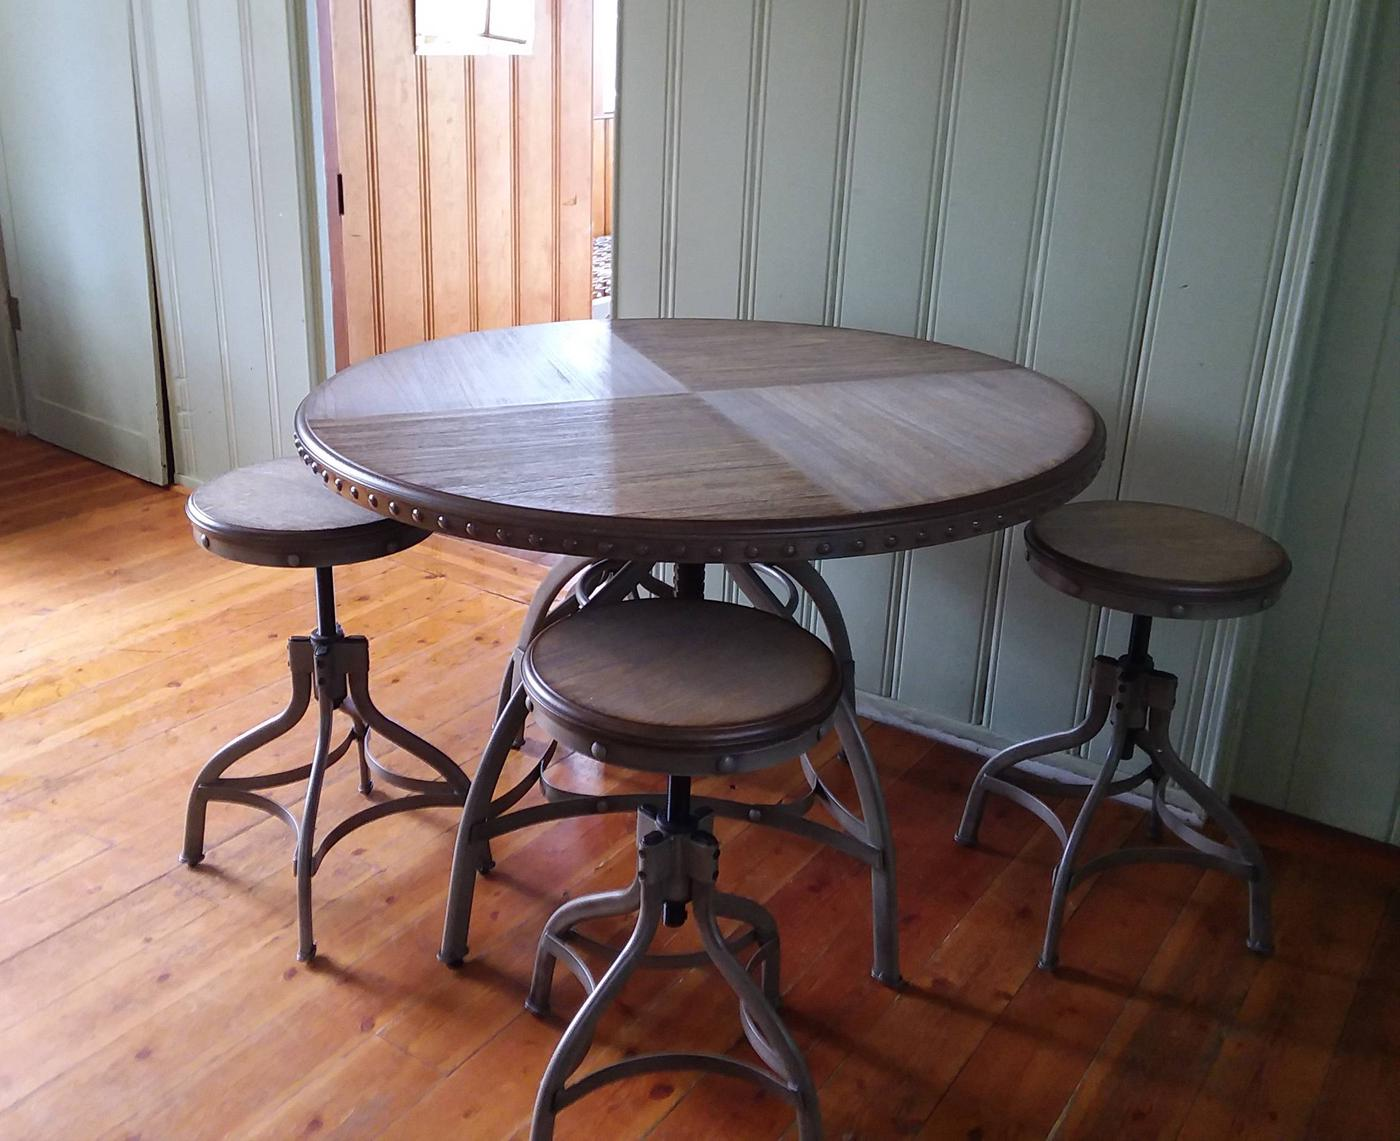 Dining table and chairs.Stylish table and bar stools accent the dining area in the cabin.